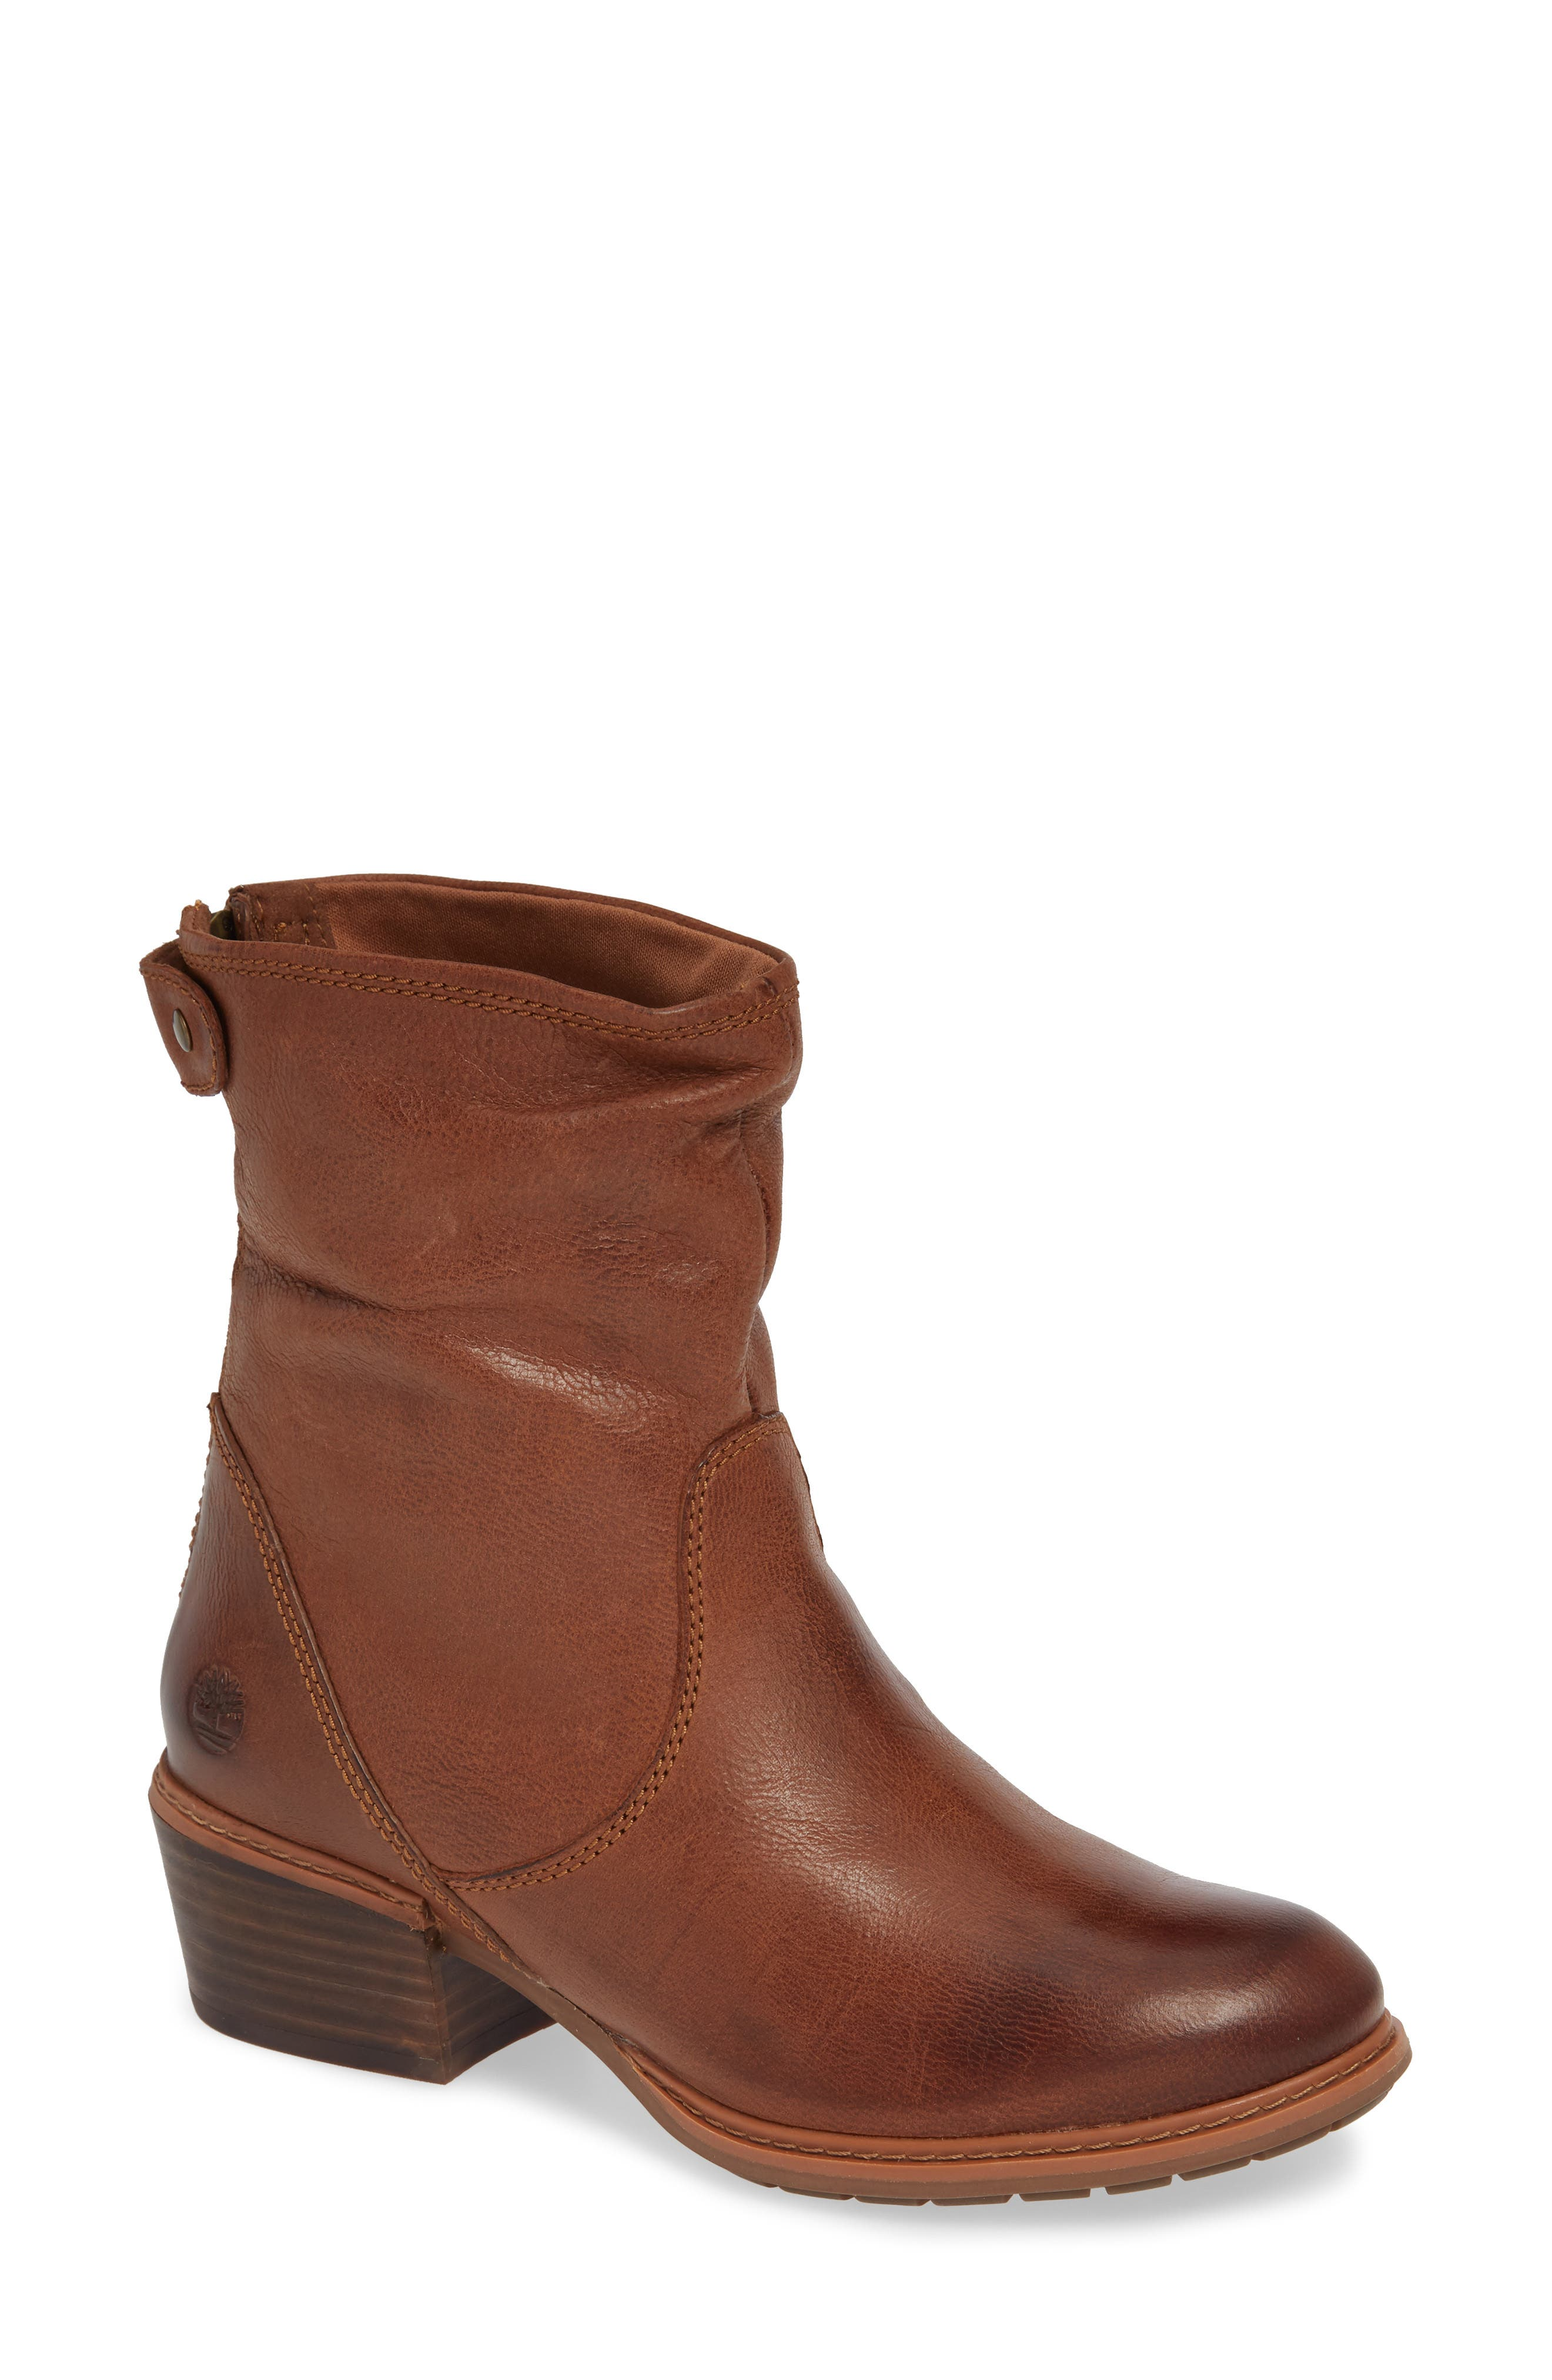 Sutherlin Bay Water Resistant Bootie,                             Main thumbnail 1, color,                             ARGAN OIL LEATHER